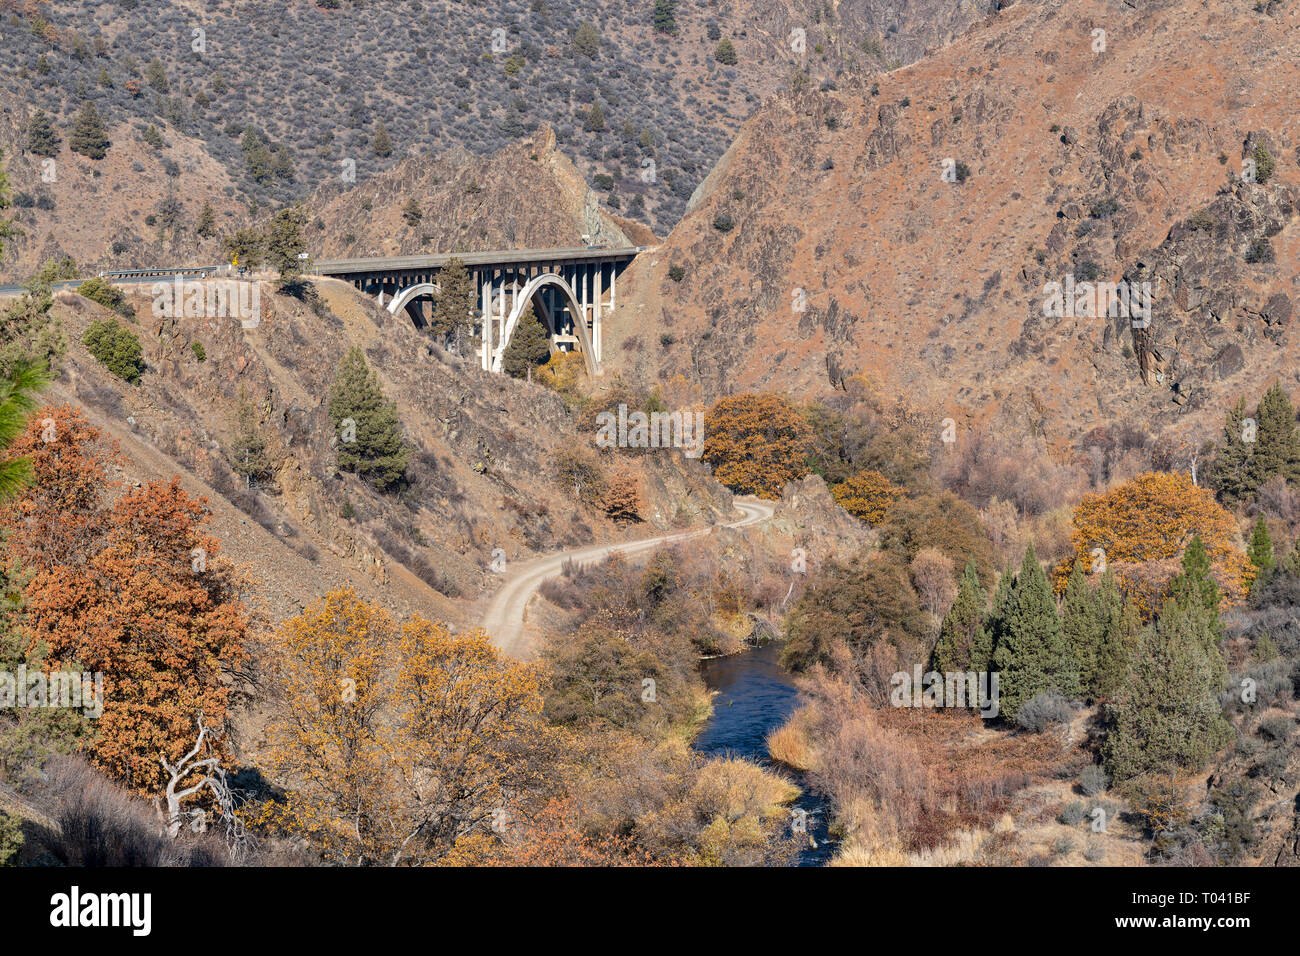 A bridge over the Shasta River on Highway 263 in California, USA - Stock Image